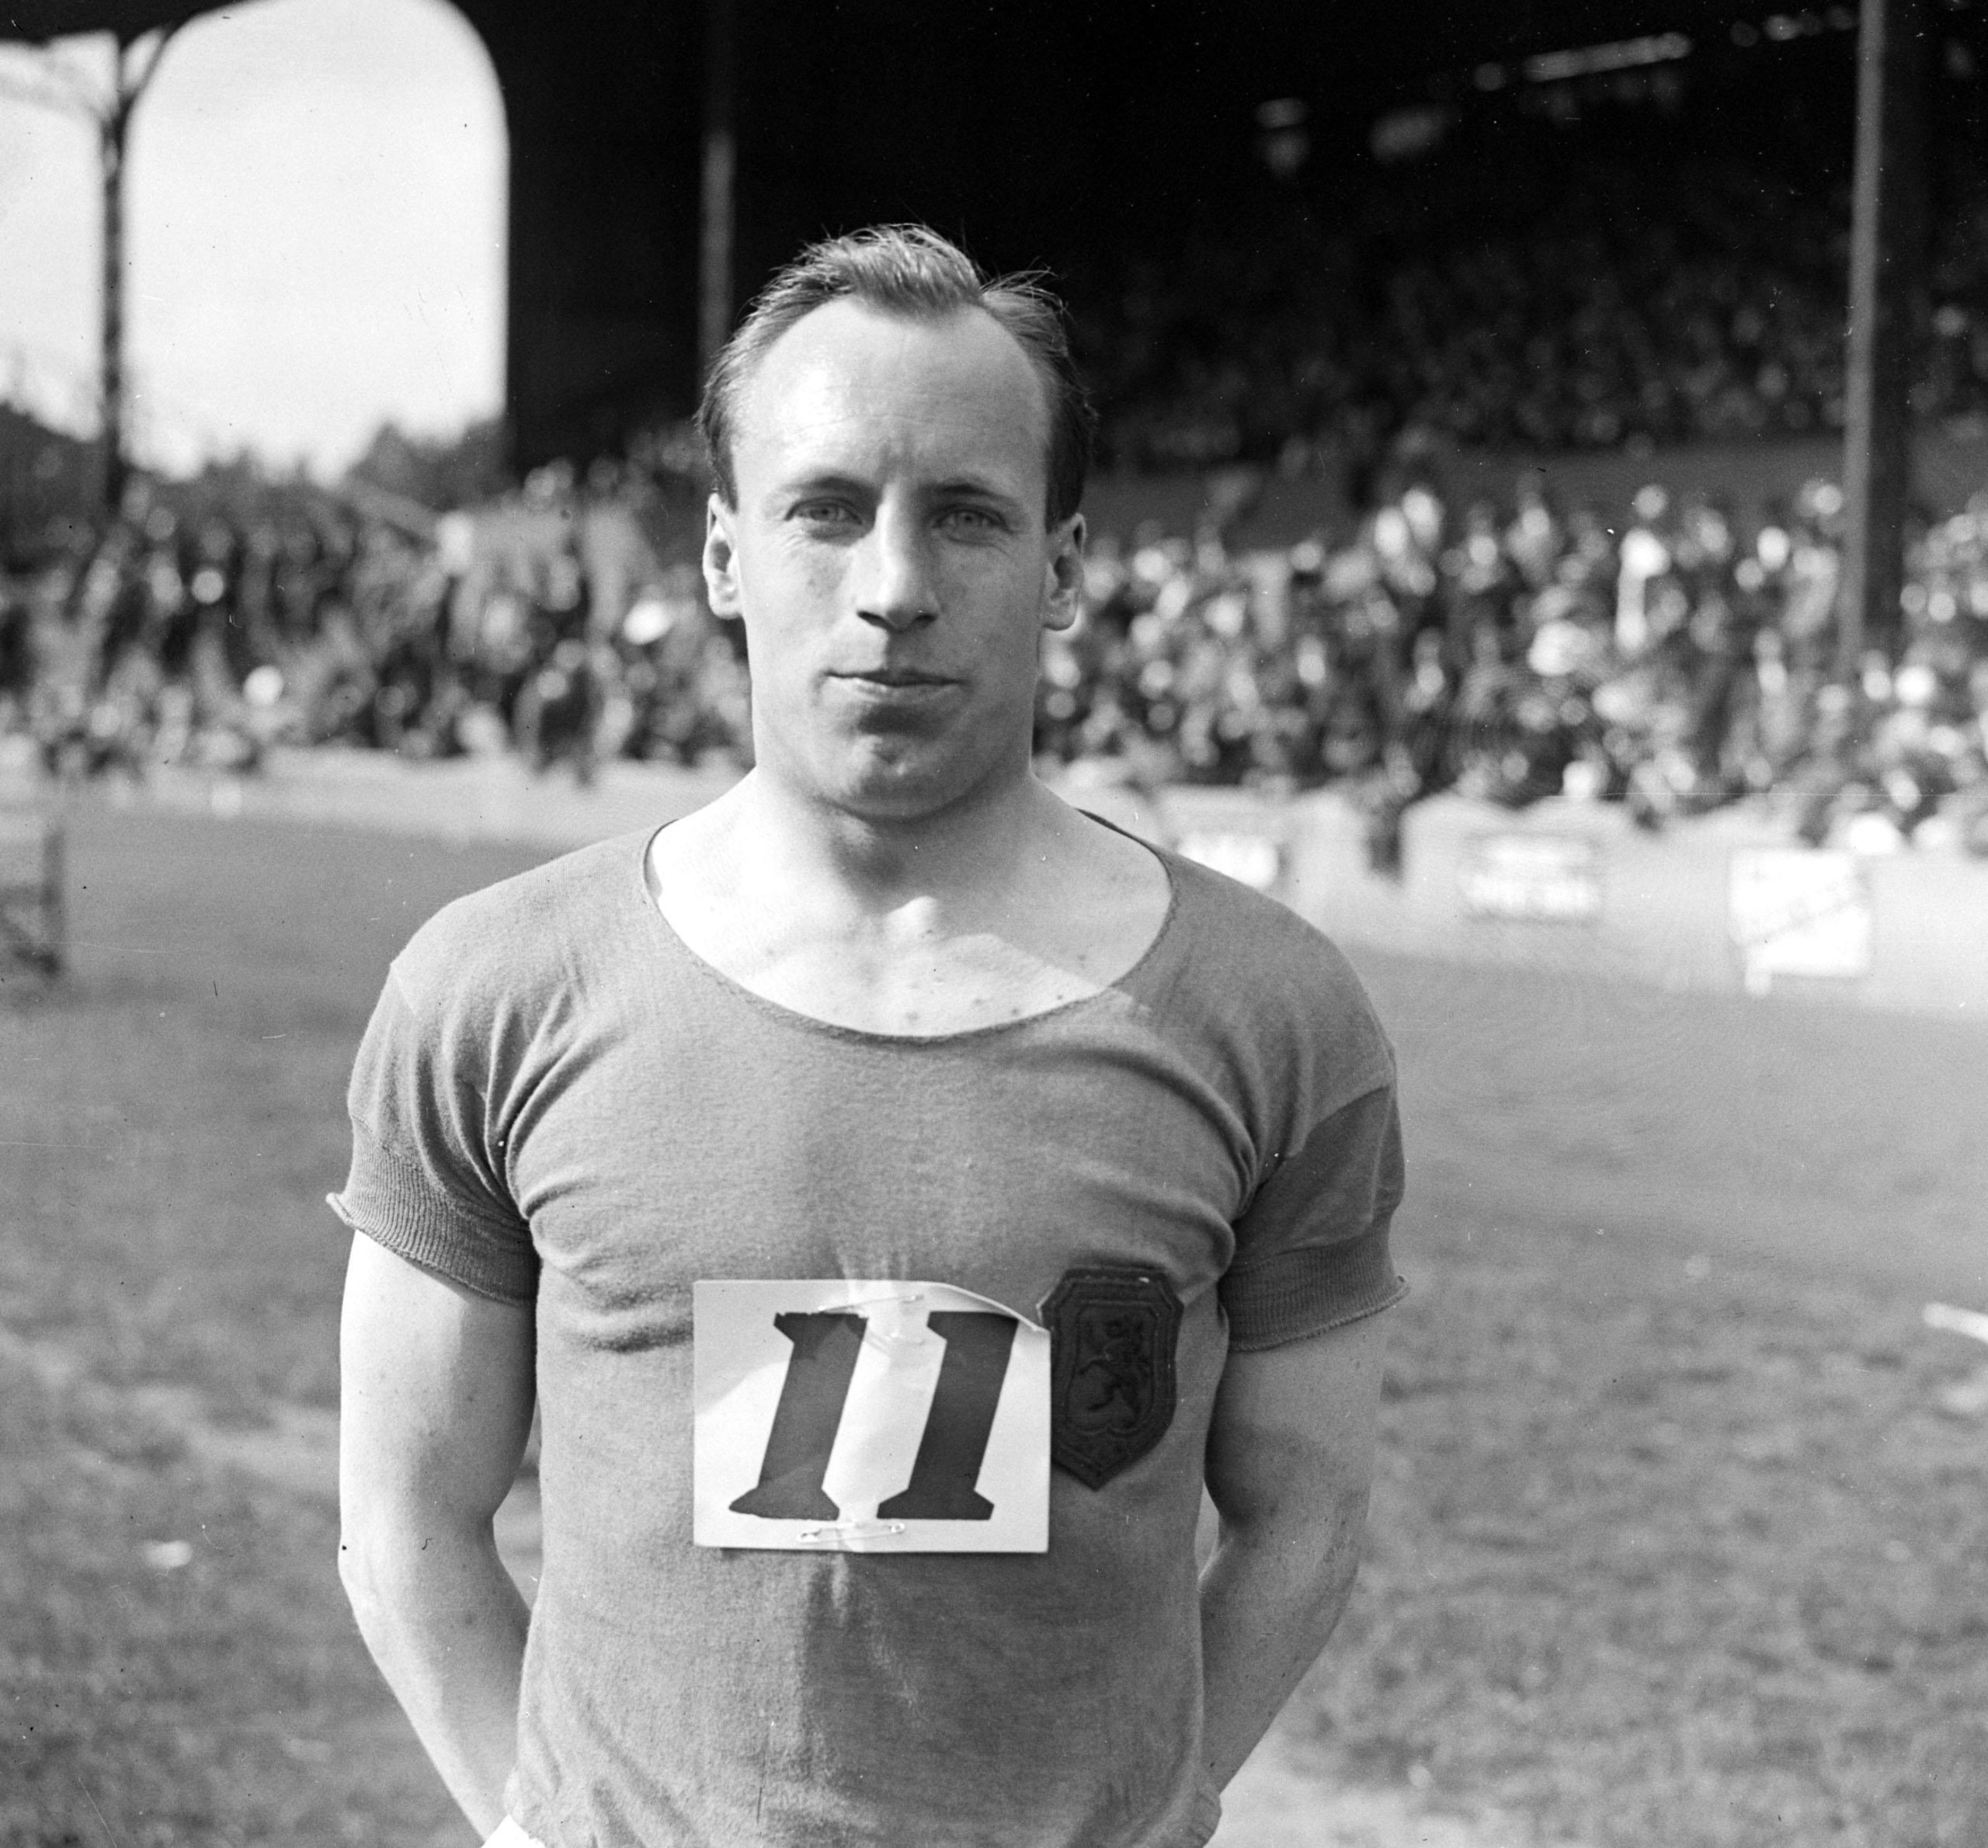 """Eric Liddell, the Scottish missionary who won the Gold in the 400 metres at the 1924 Olympic Games in Paris. His story was made famous by the film, """"Chariots of Fire"""". After quitting athletics he became a christian missionary in China, until captured by the Japanese. He died in a prisoner of war camp in 1945."""